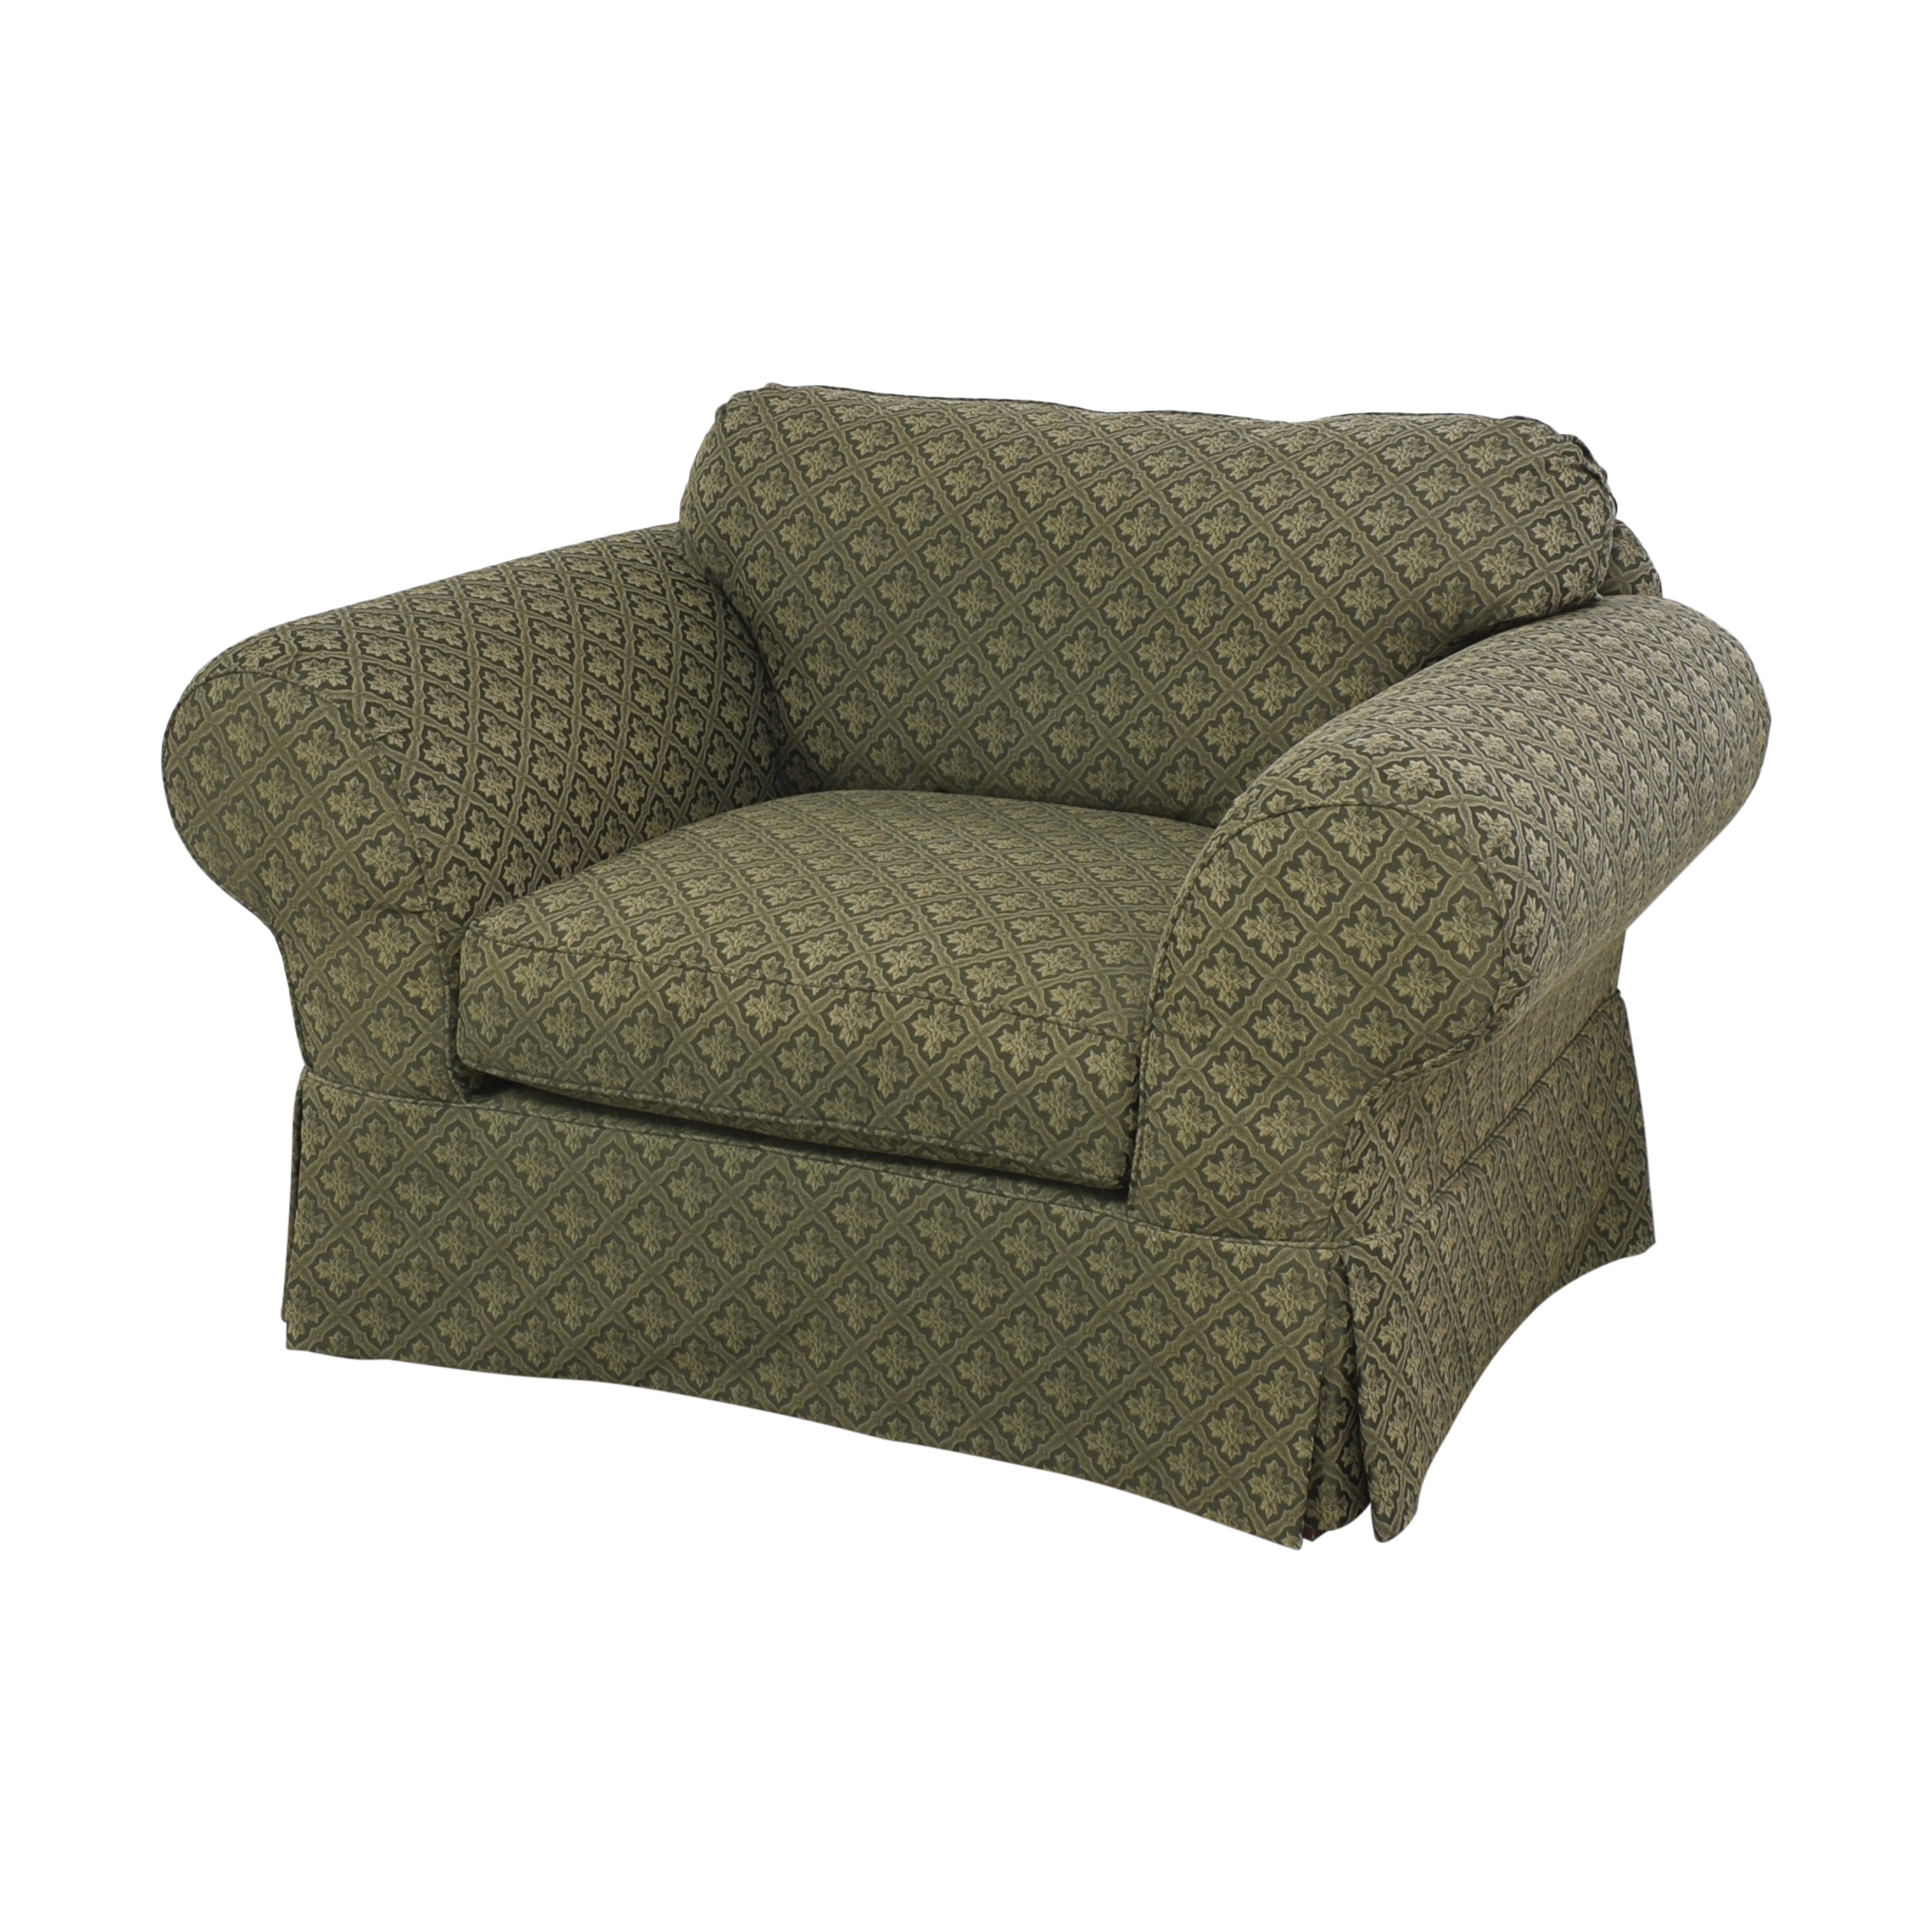 Broyhill Furniture Broyhill Lounge Chair with Ottoman Chairs